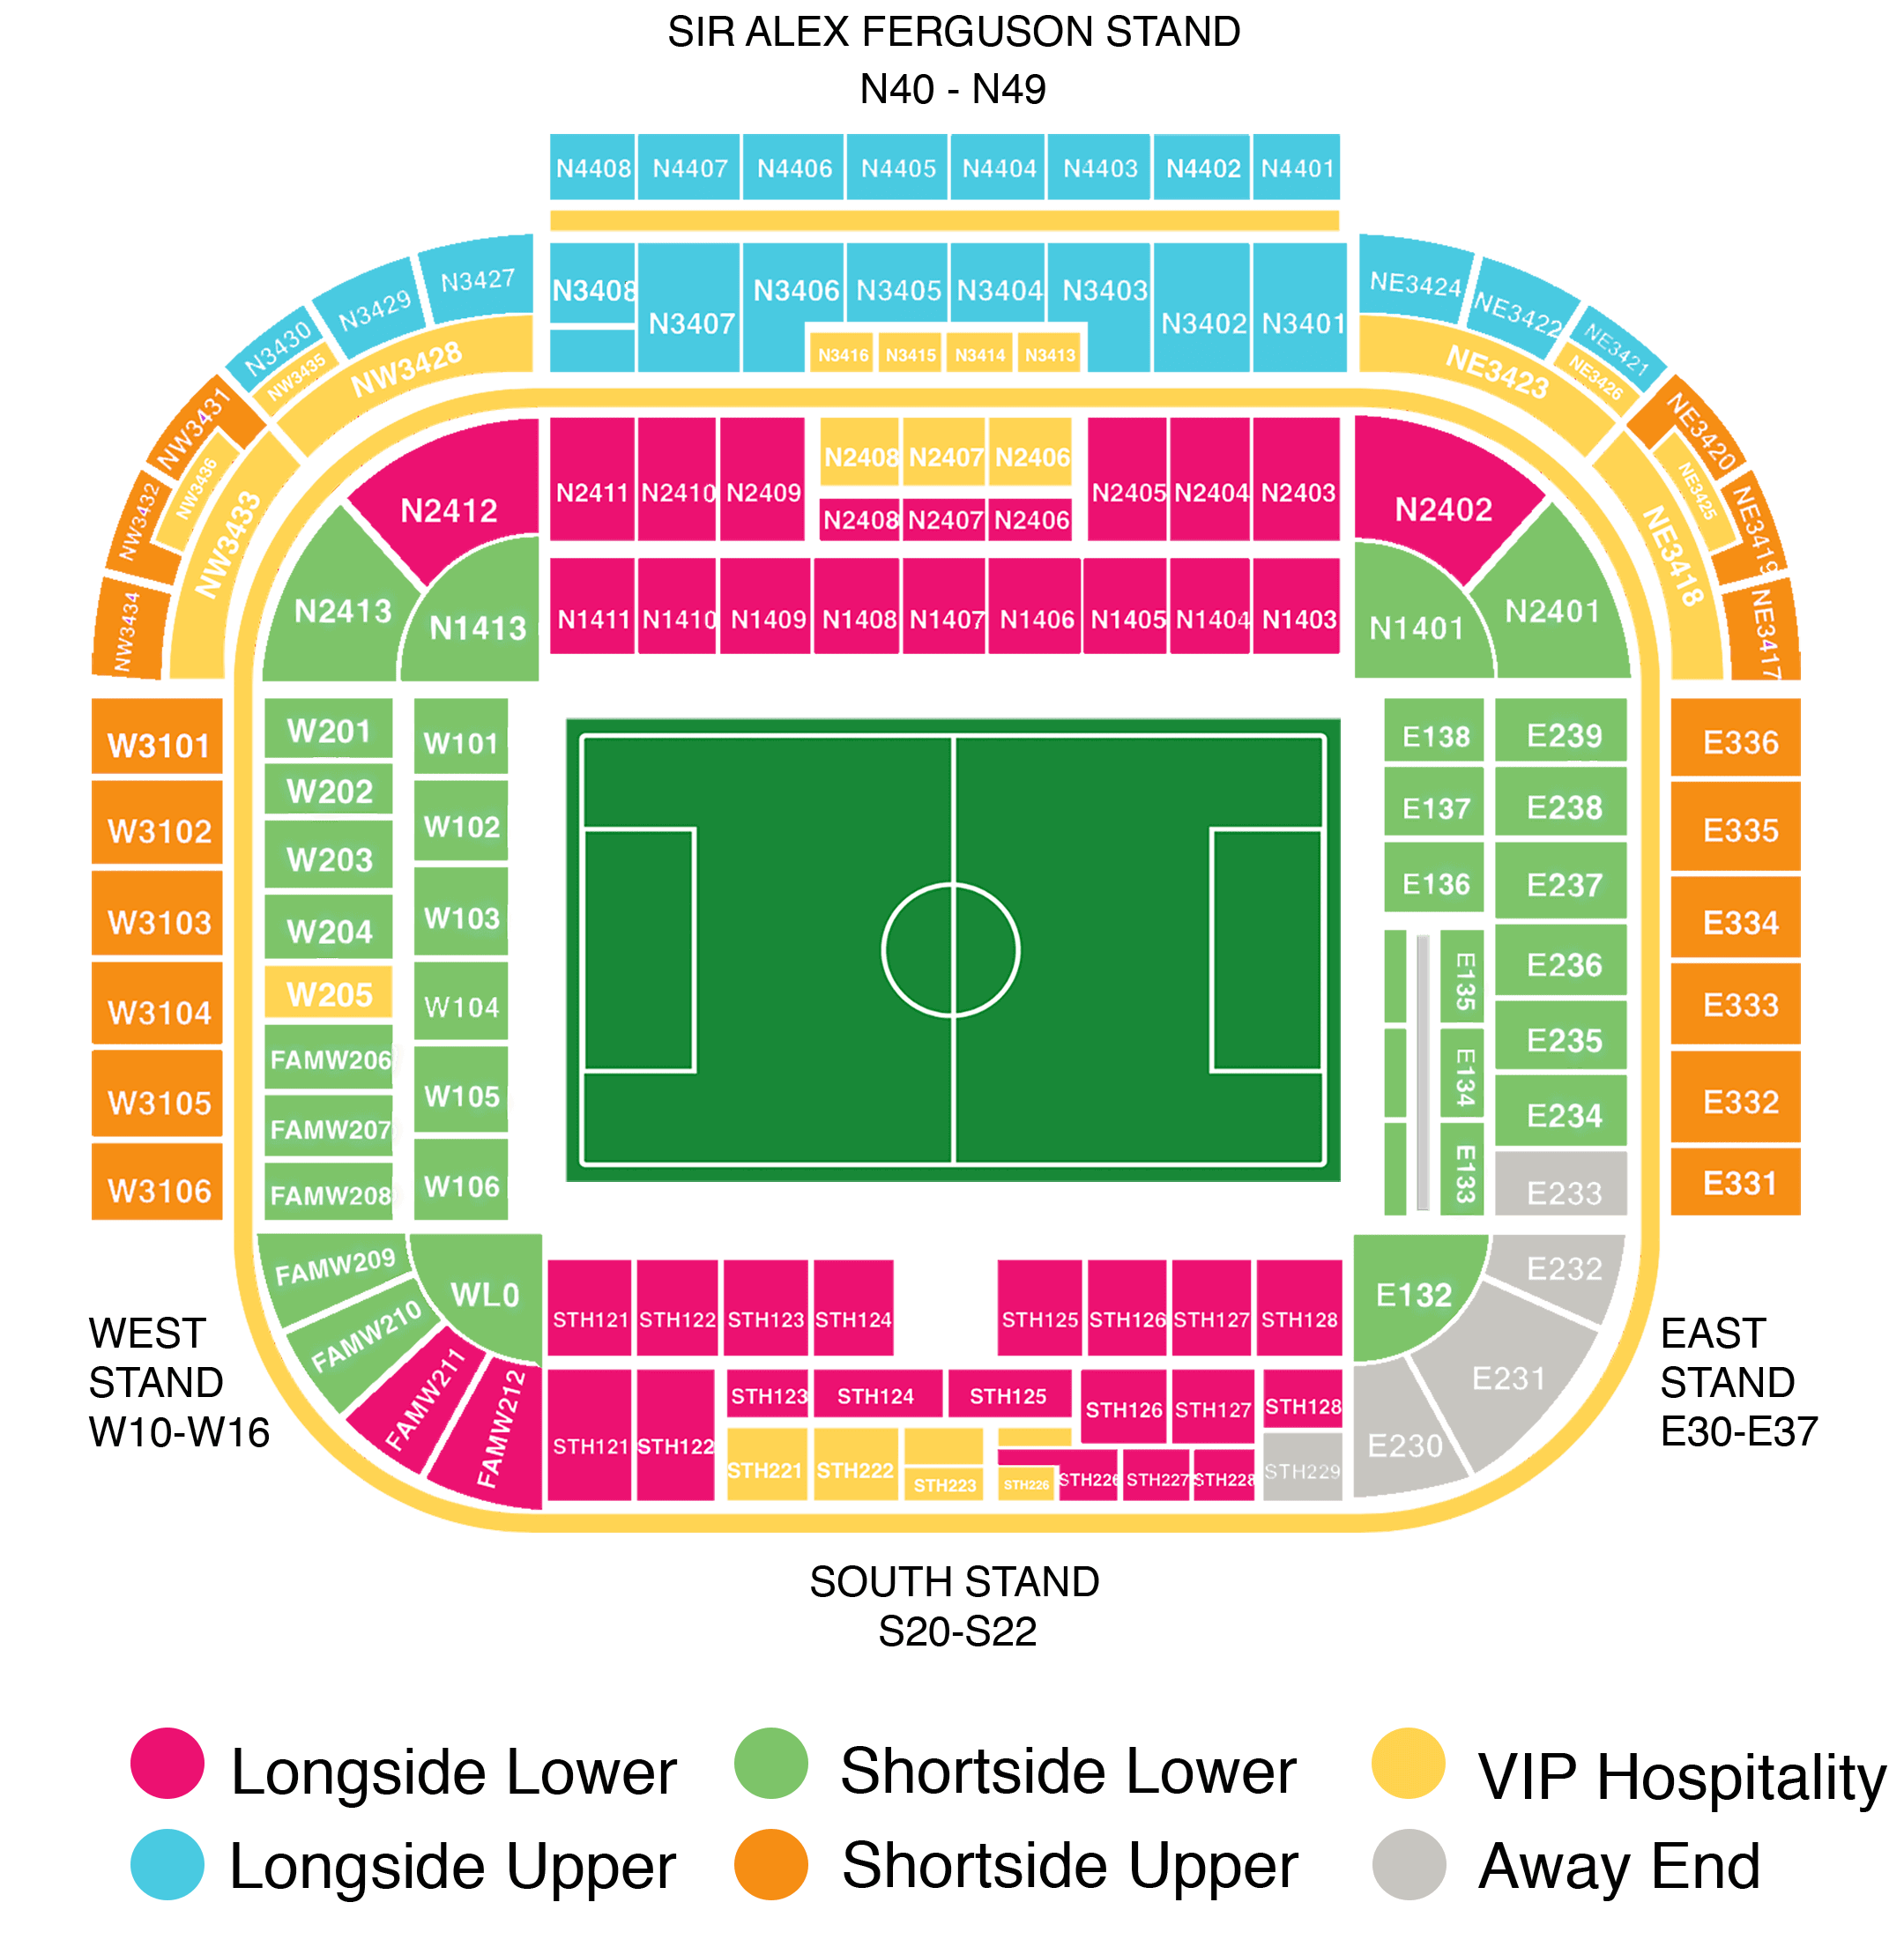 f0dd2a27d ... Pad can offer MUFC supporters the chance to experience the famous  atmosphere first hand with their very own official Manchester United  football tickets.